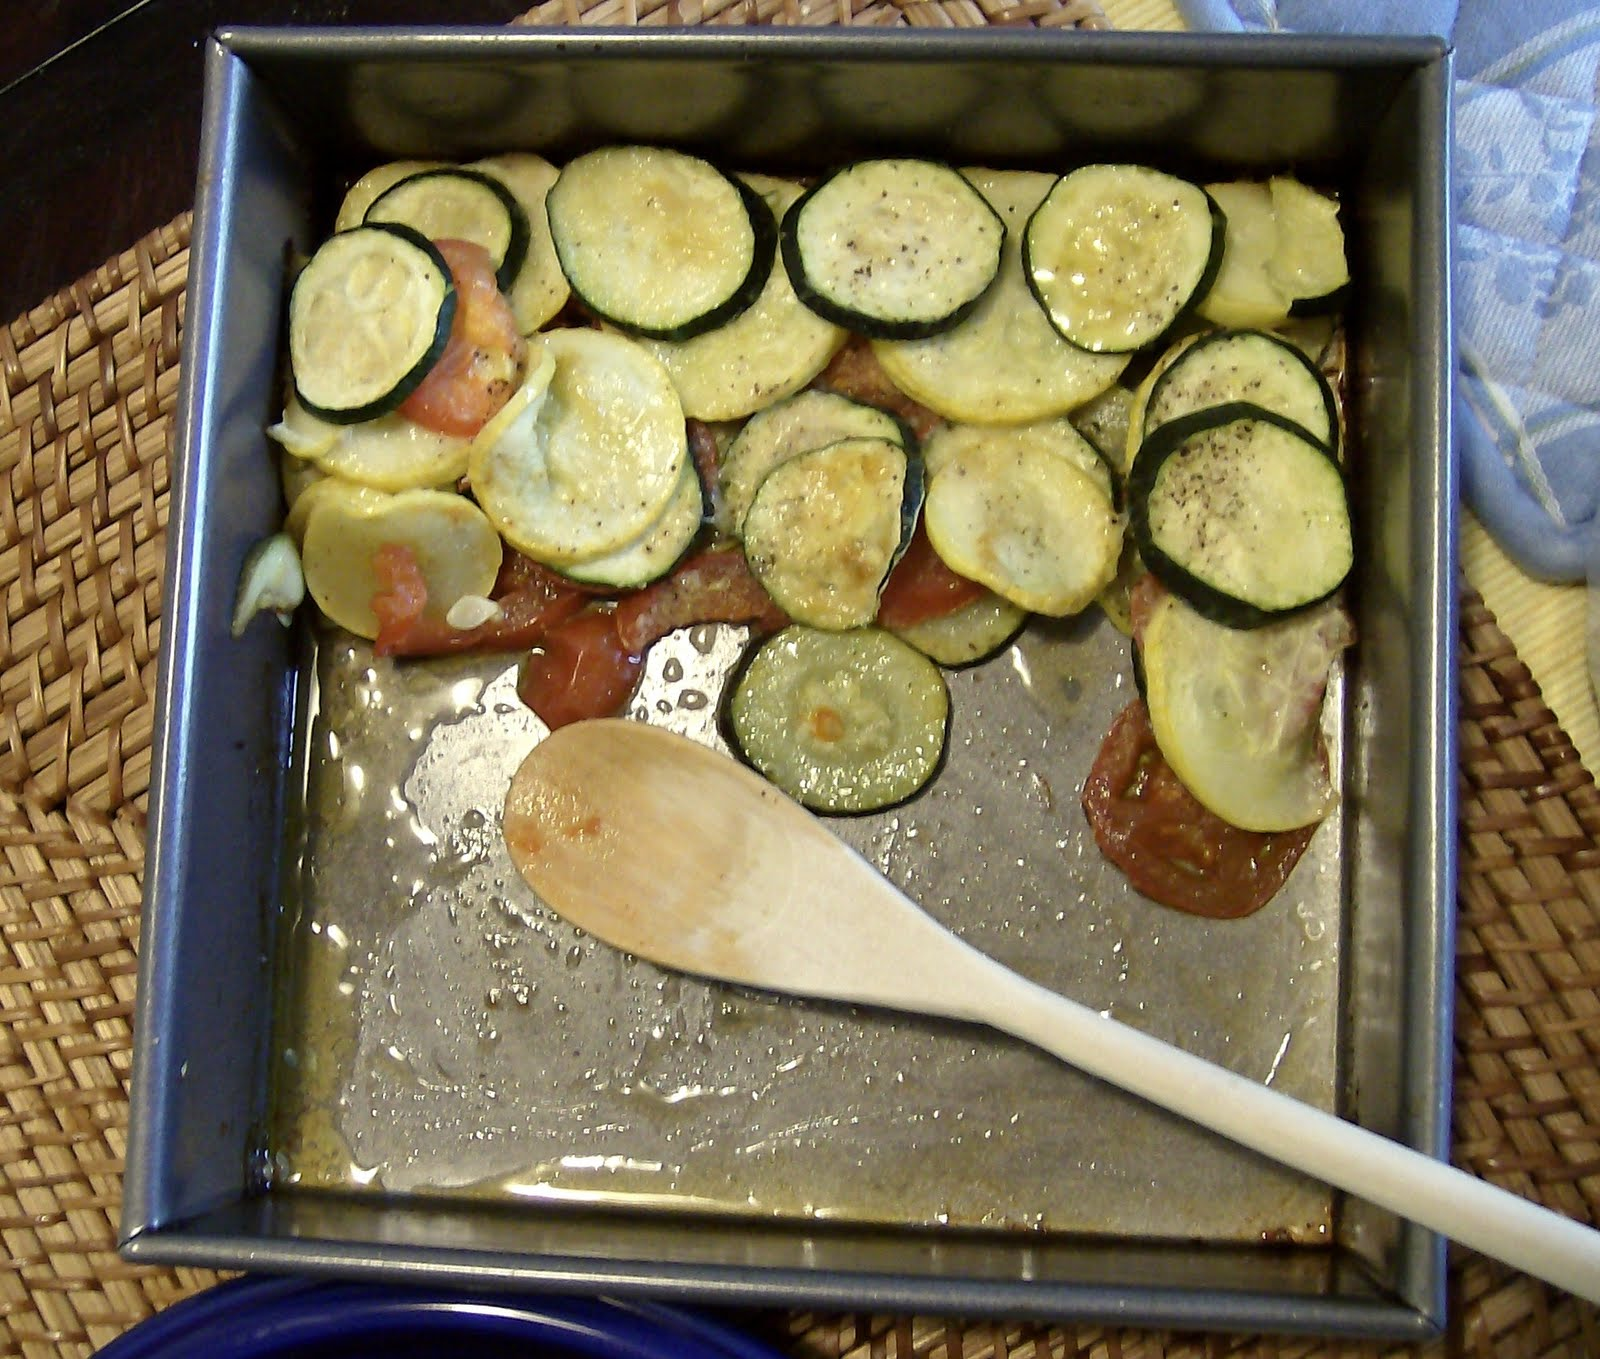 The Skimpy Pantry: Baked Parmesan Zucchini, Summer Squash